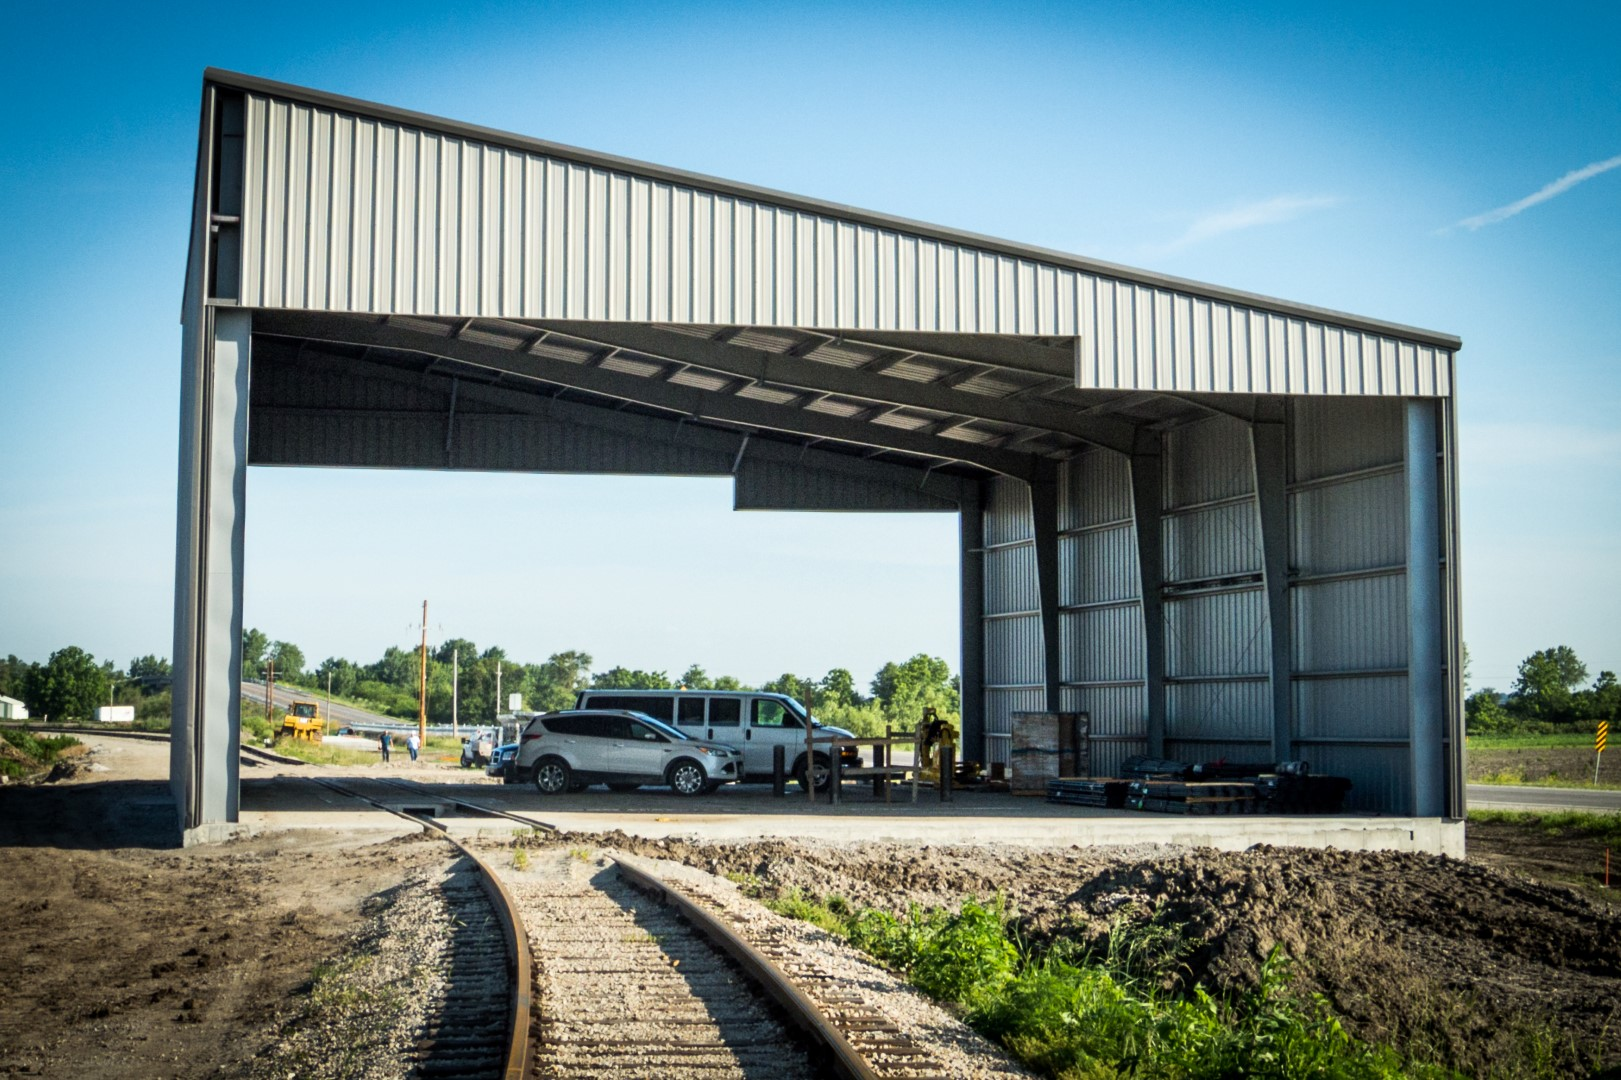 Hardin, Missouri – Fertilizer Storage and Handling